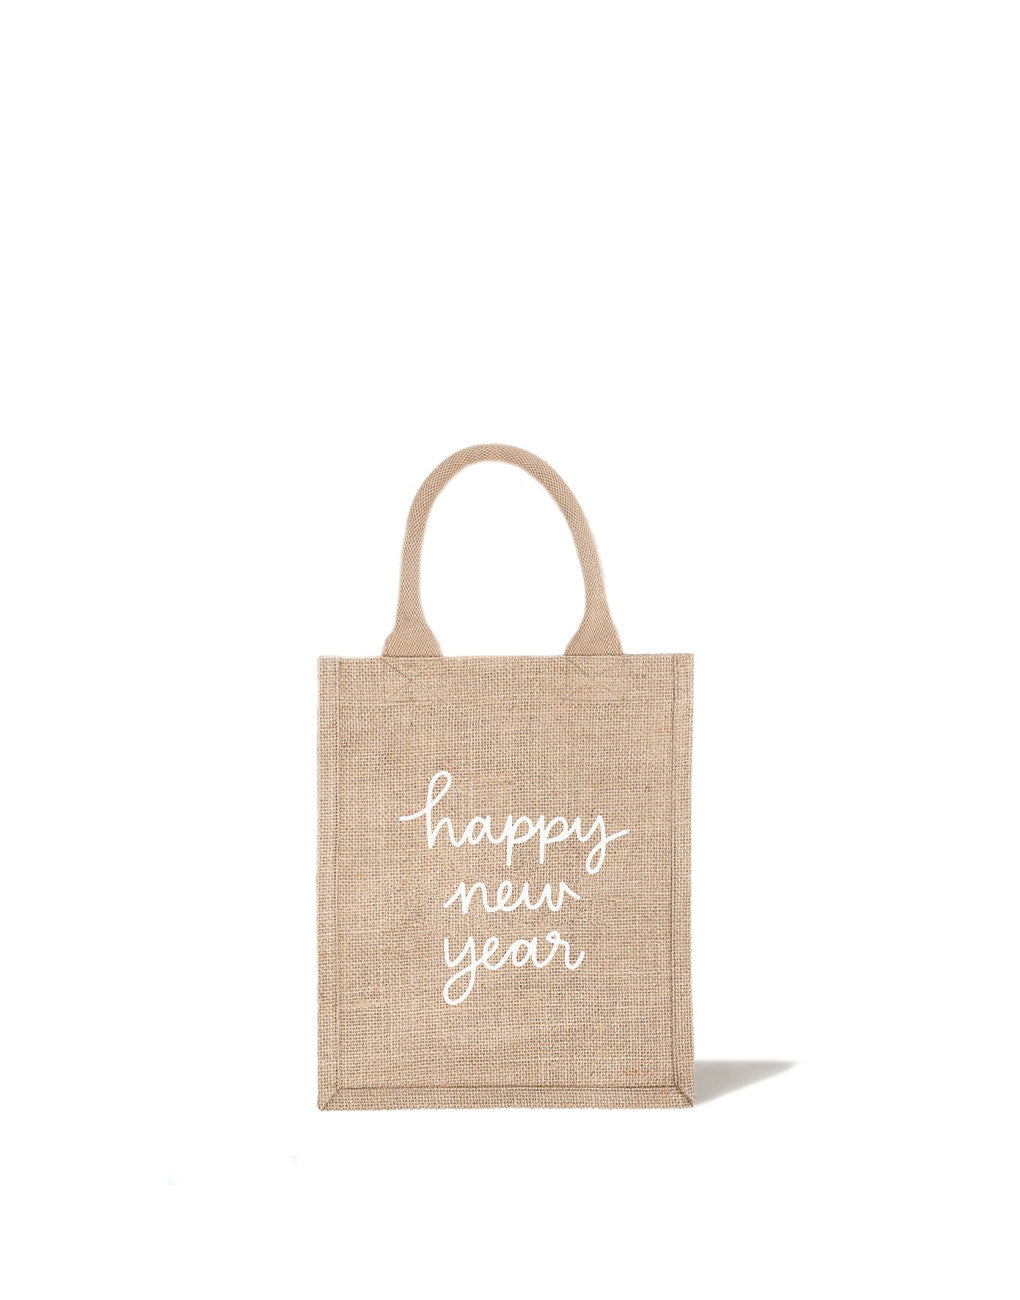 Medium Happy New Year Reusable Gift Tote In White Font | The Little Market